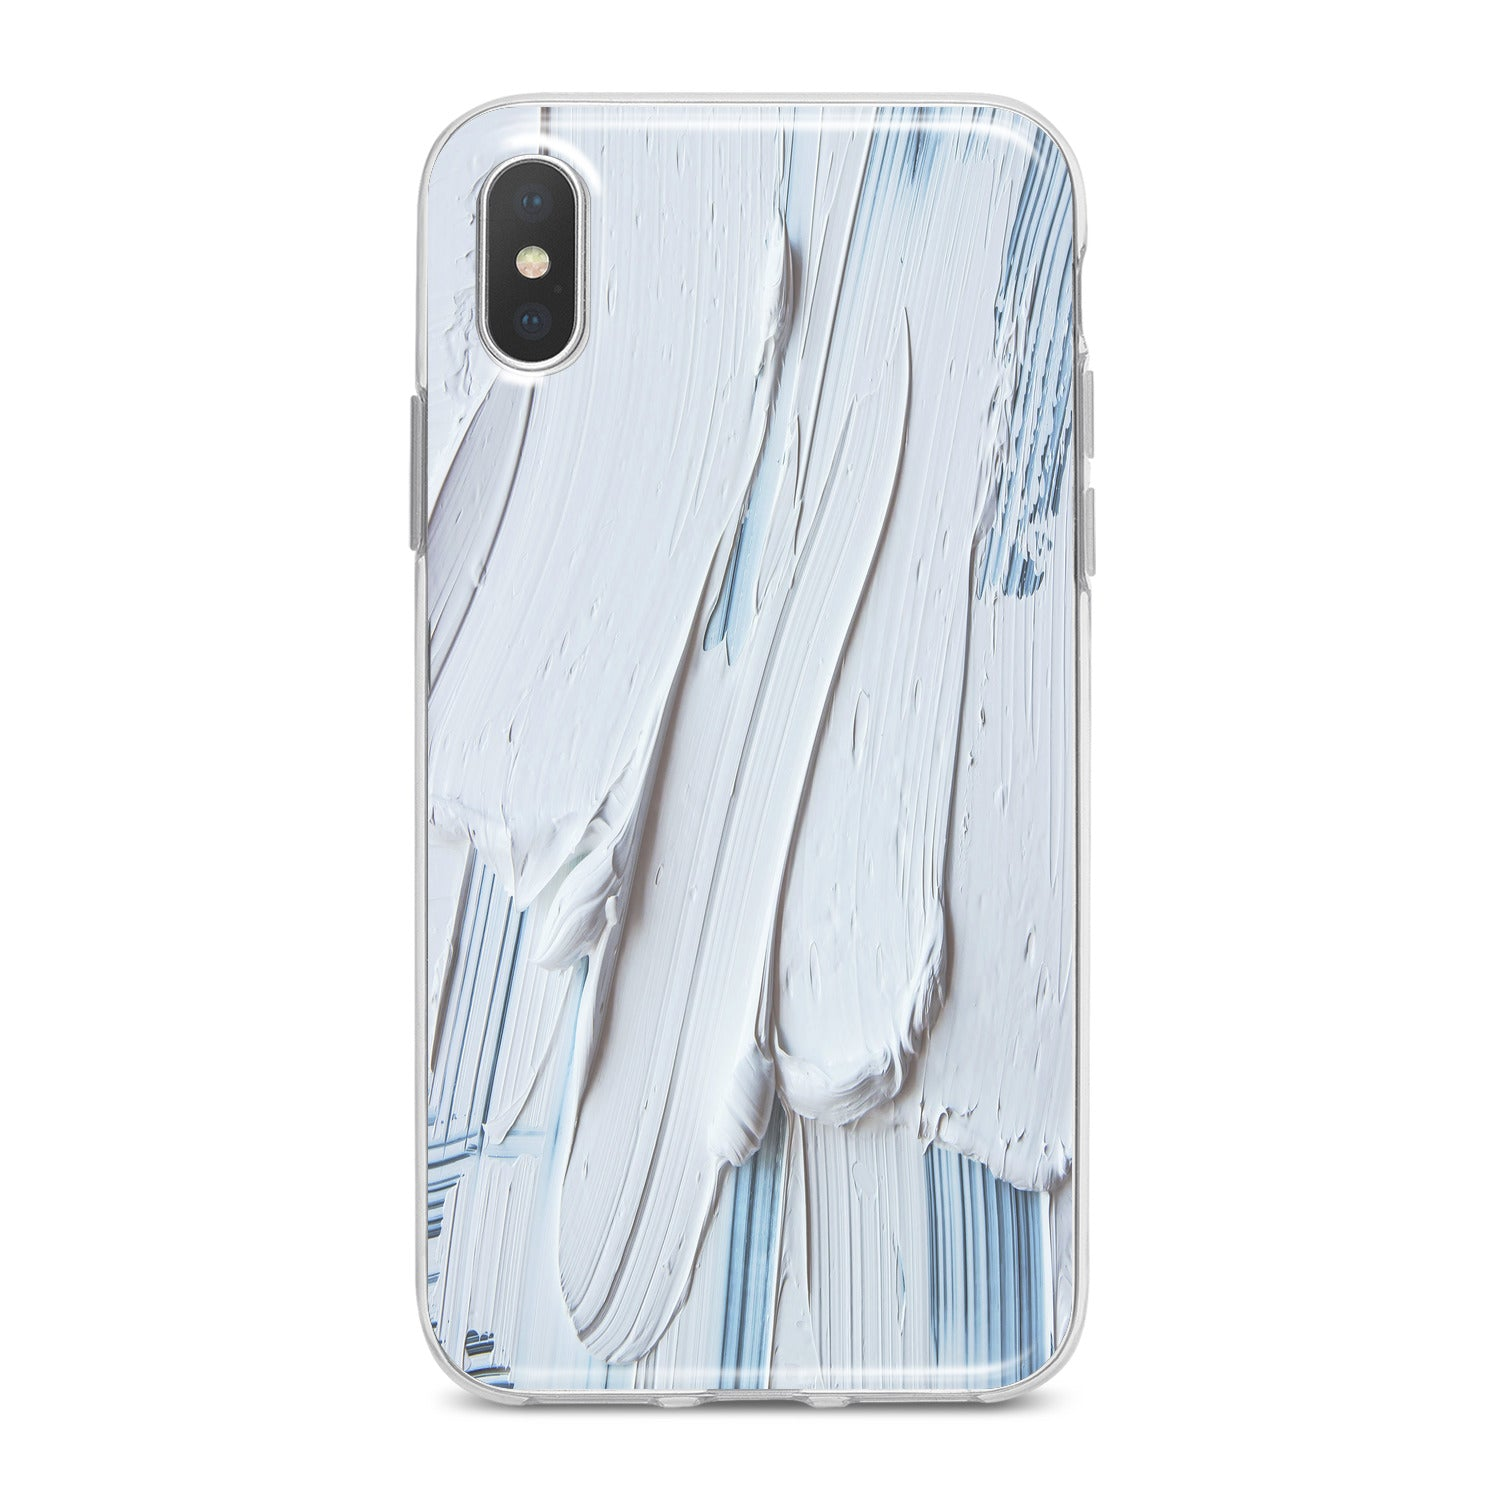 Lex Altern White Gouache Pattern Phone Case for your iPhone & Android phone.